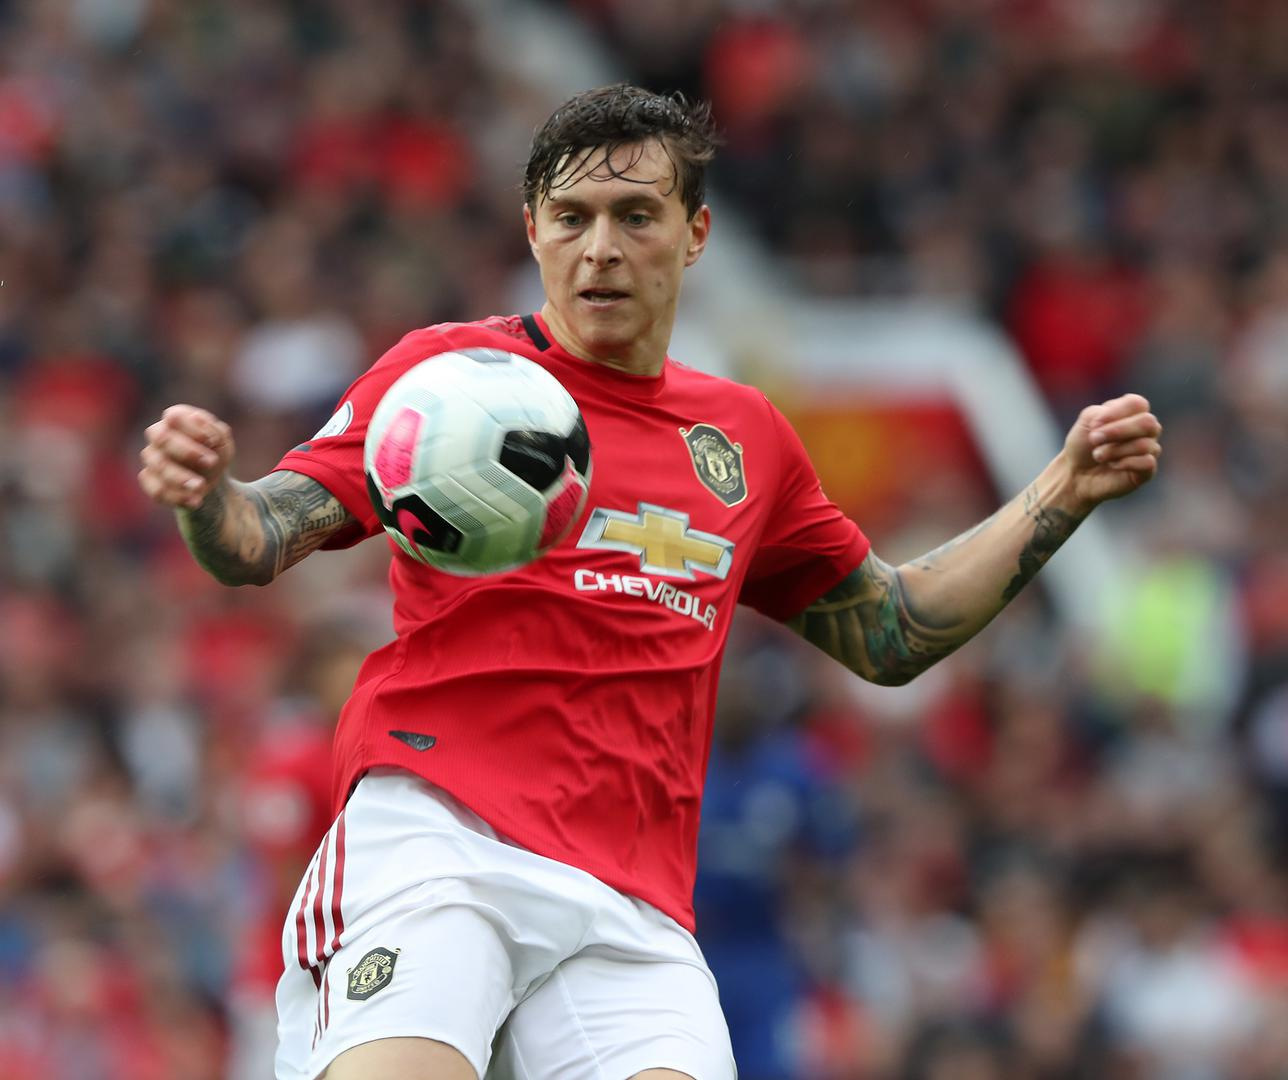 Victor Lindelof chests the ball down against Chelsea.